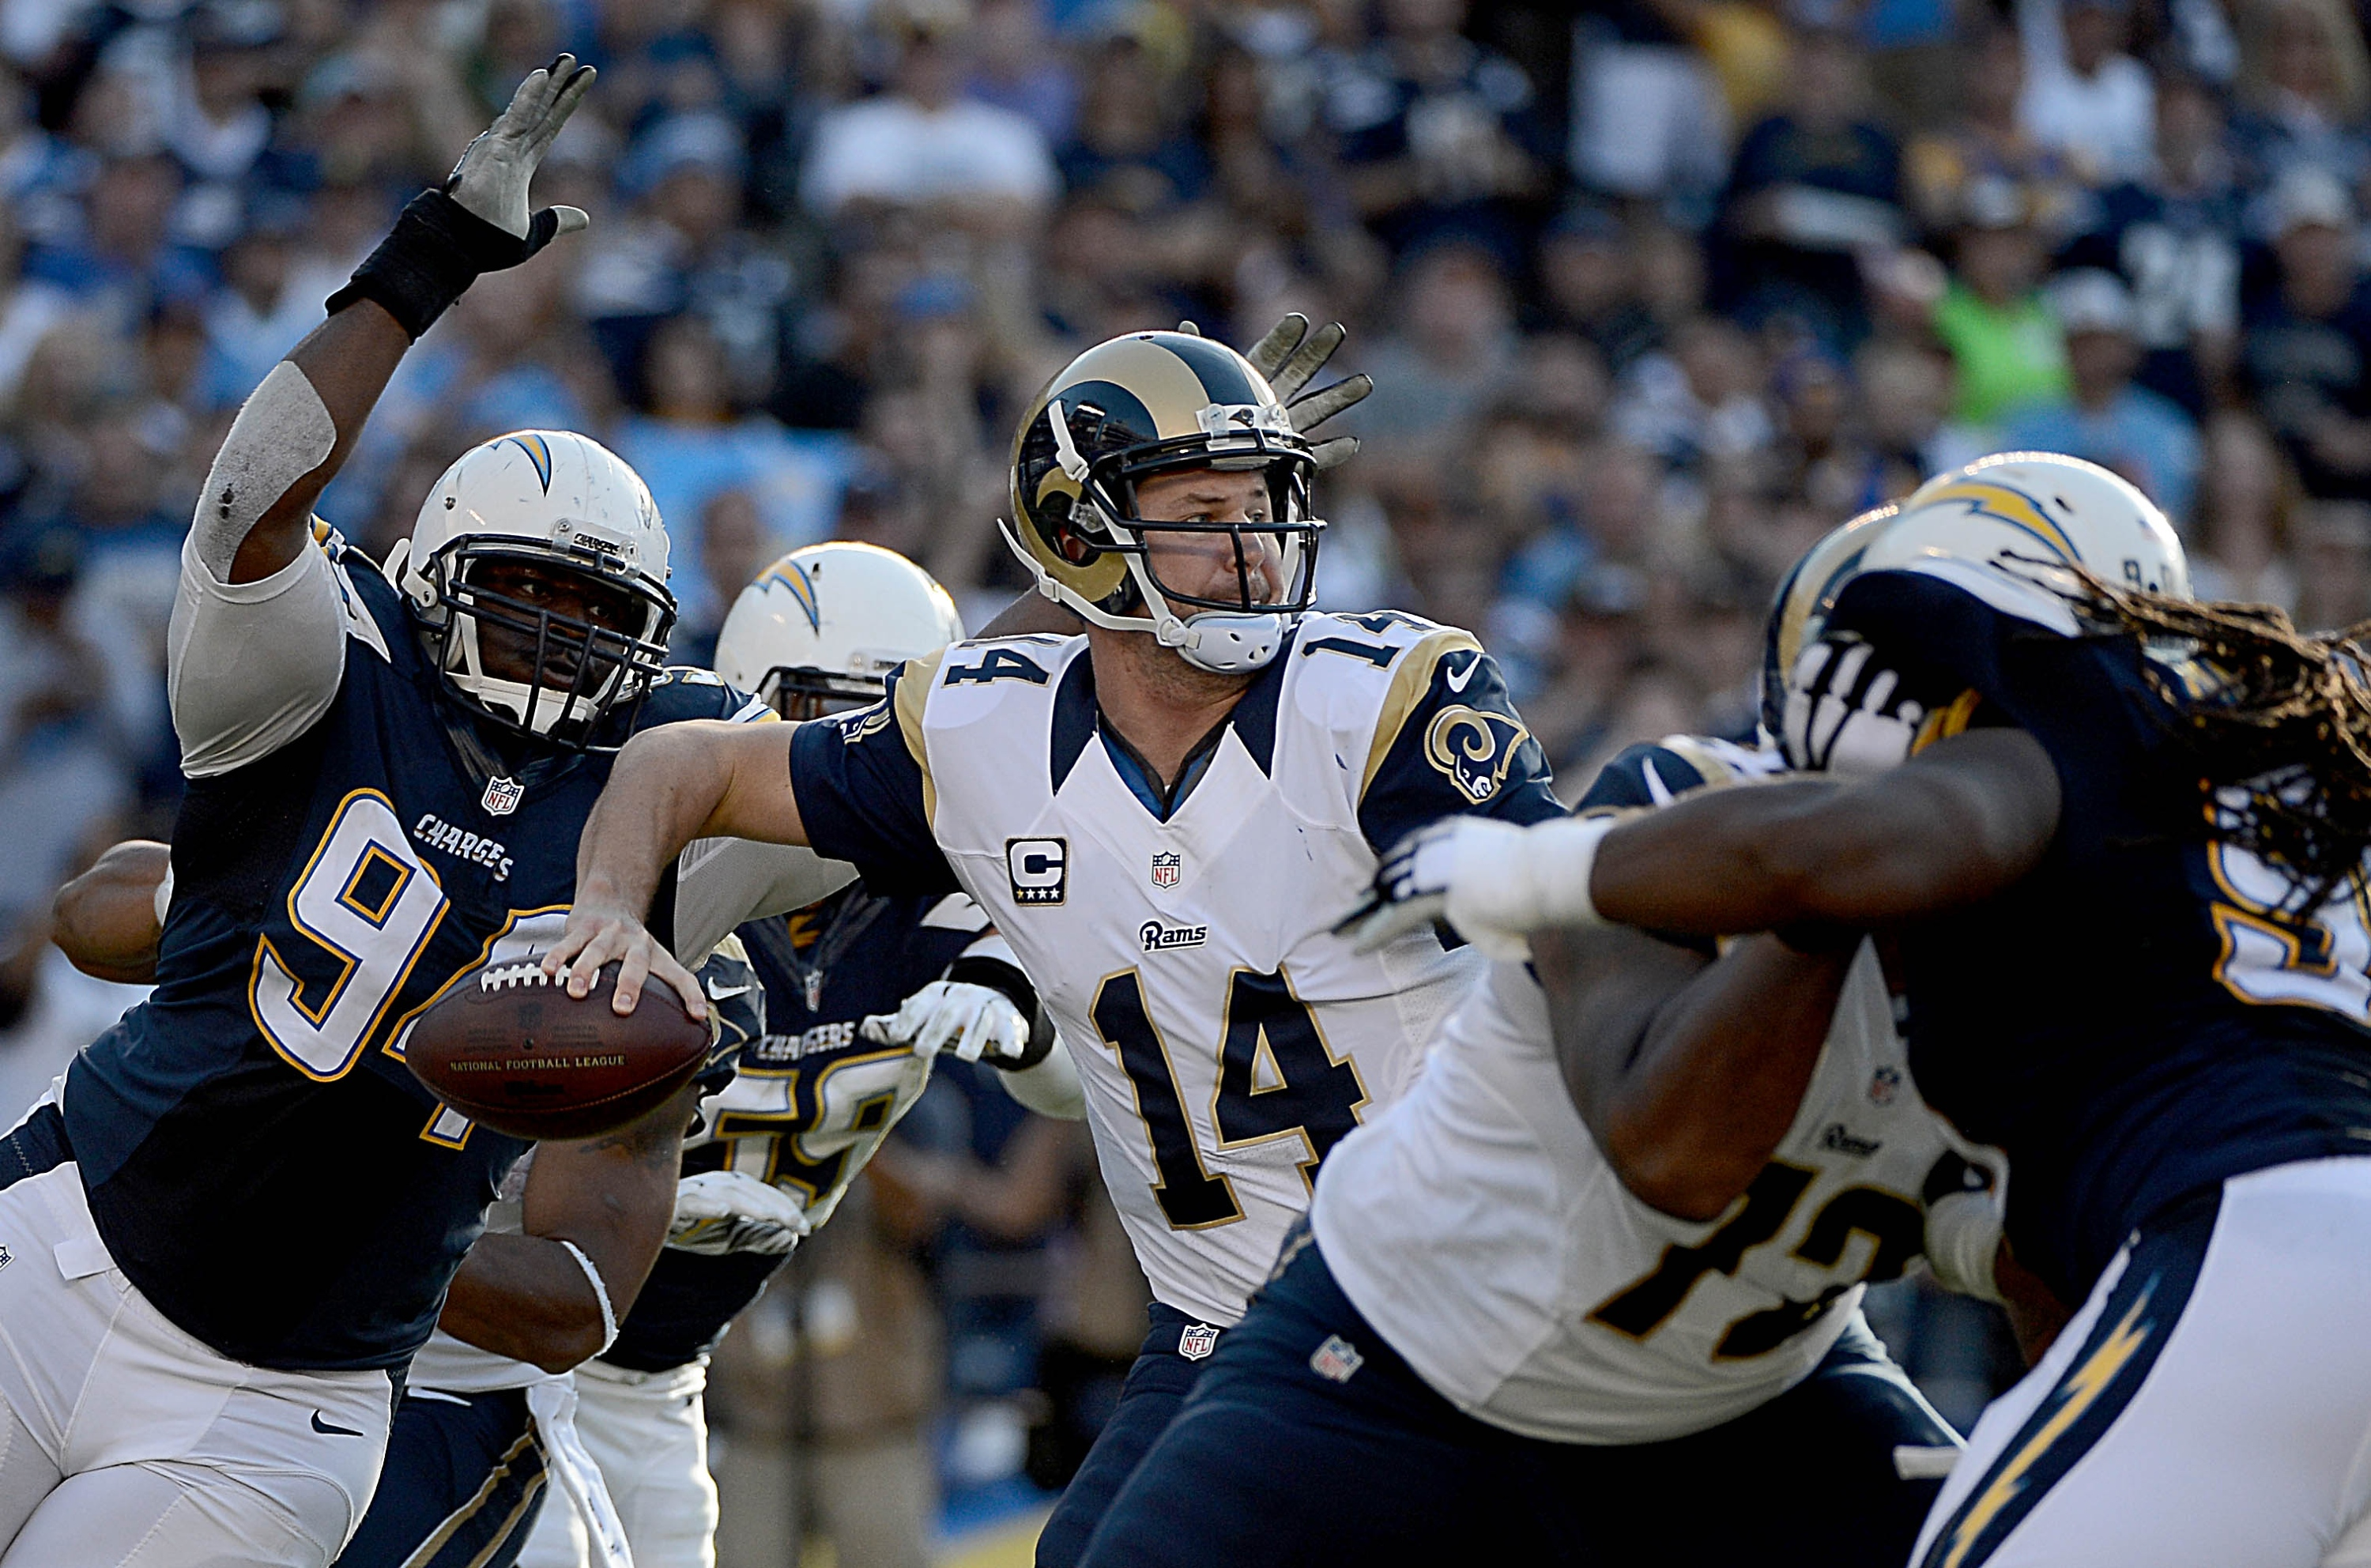 SAN DIEGO, CA- NOVEMBER 23:  Quarterback Shaun Hill #14 of the St. Louis Rams has the ball knocked out of his hand by Corey Liuget #94 of the San Diego Chargers which resulted in a fumble and touchdown during their NFL Game on November 23, 2014 in San Diego, California. (Photo by Donald Miralle/Getty Images)